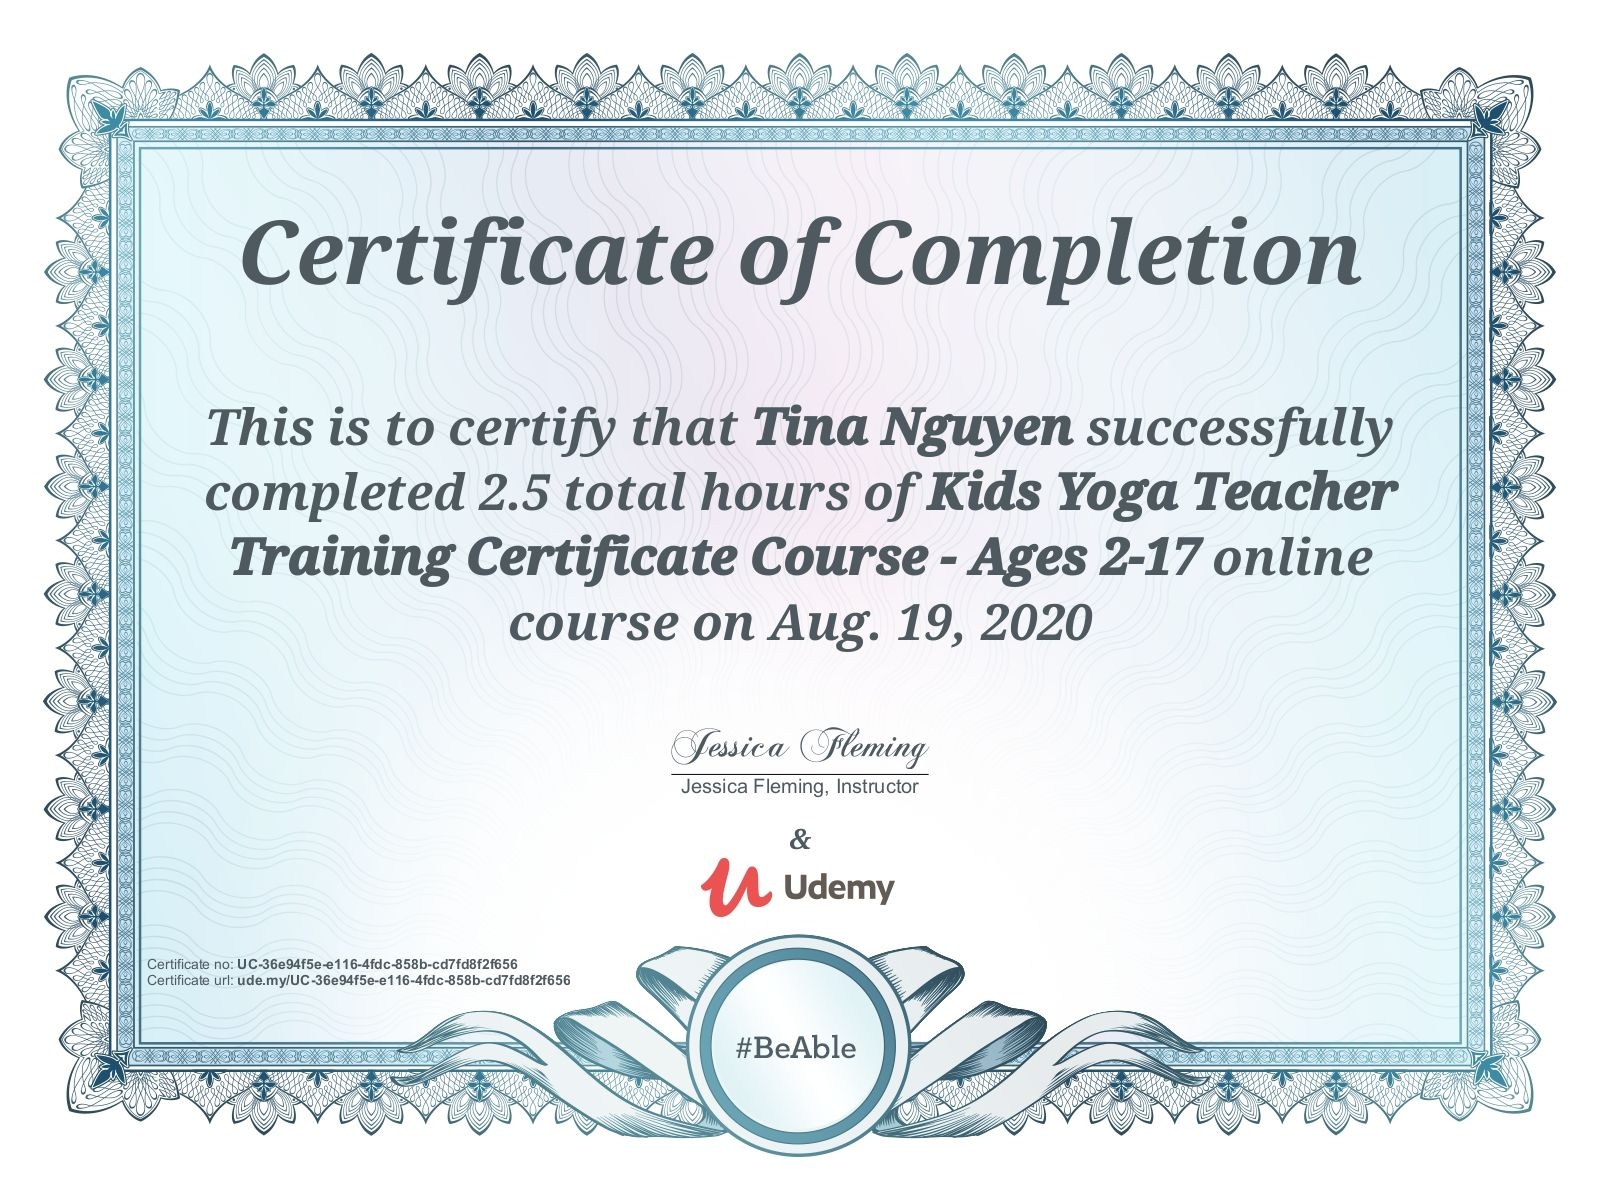 udemy certificate completion course certification cost